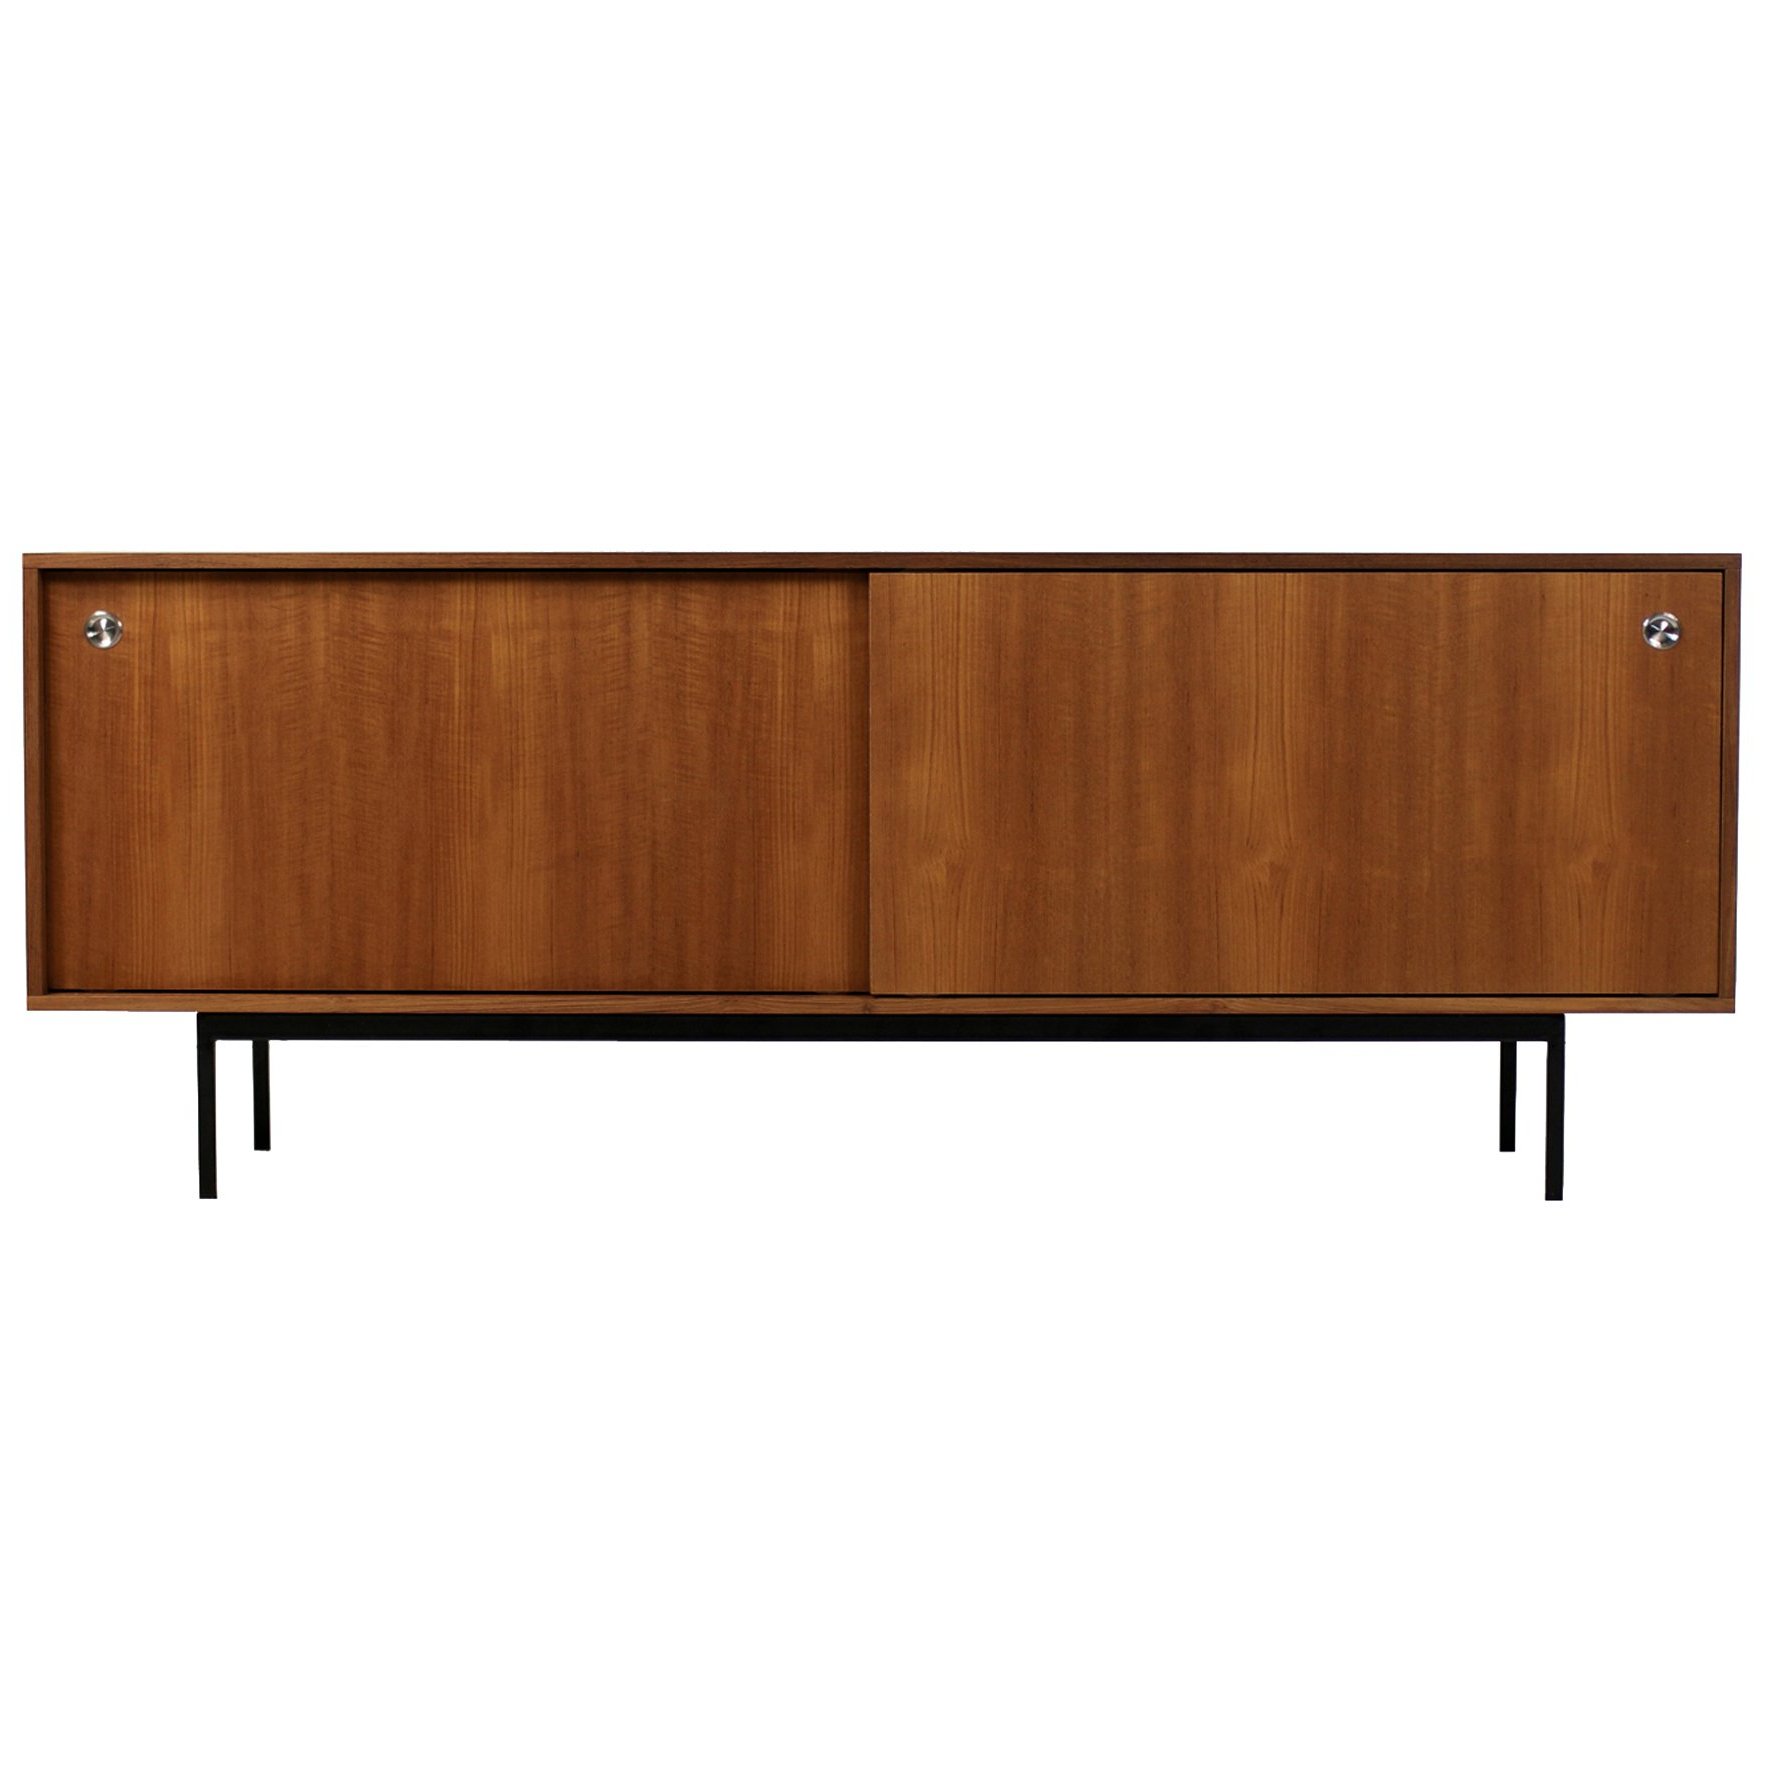 Popular Minimalist Teak Sideboardnathan Lindberg Design, Sliding Doors With Girard 4 Door Sideboards (View 13 of 20)